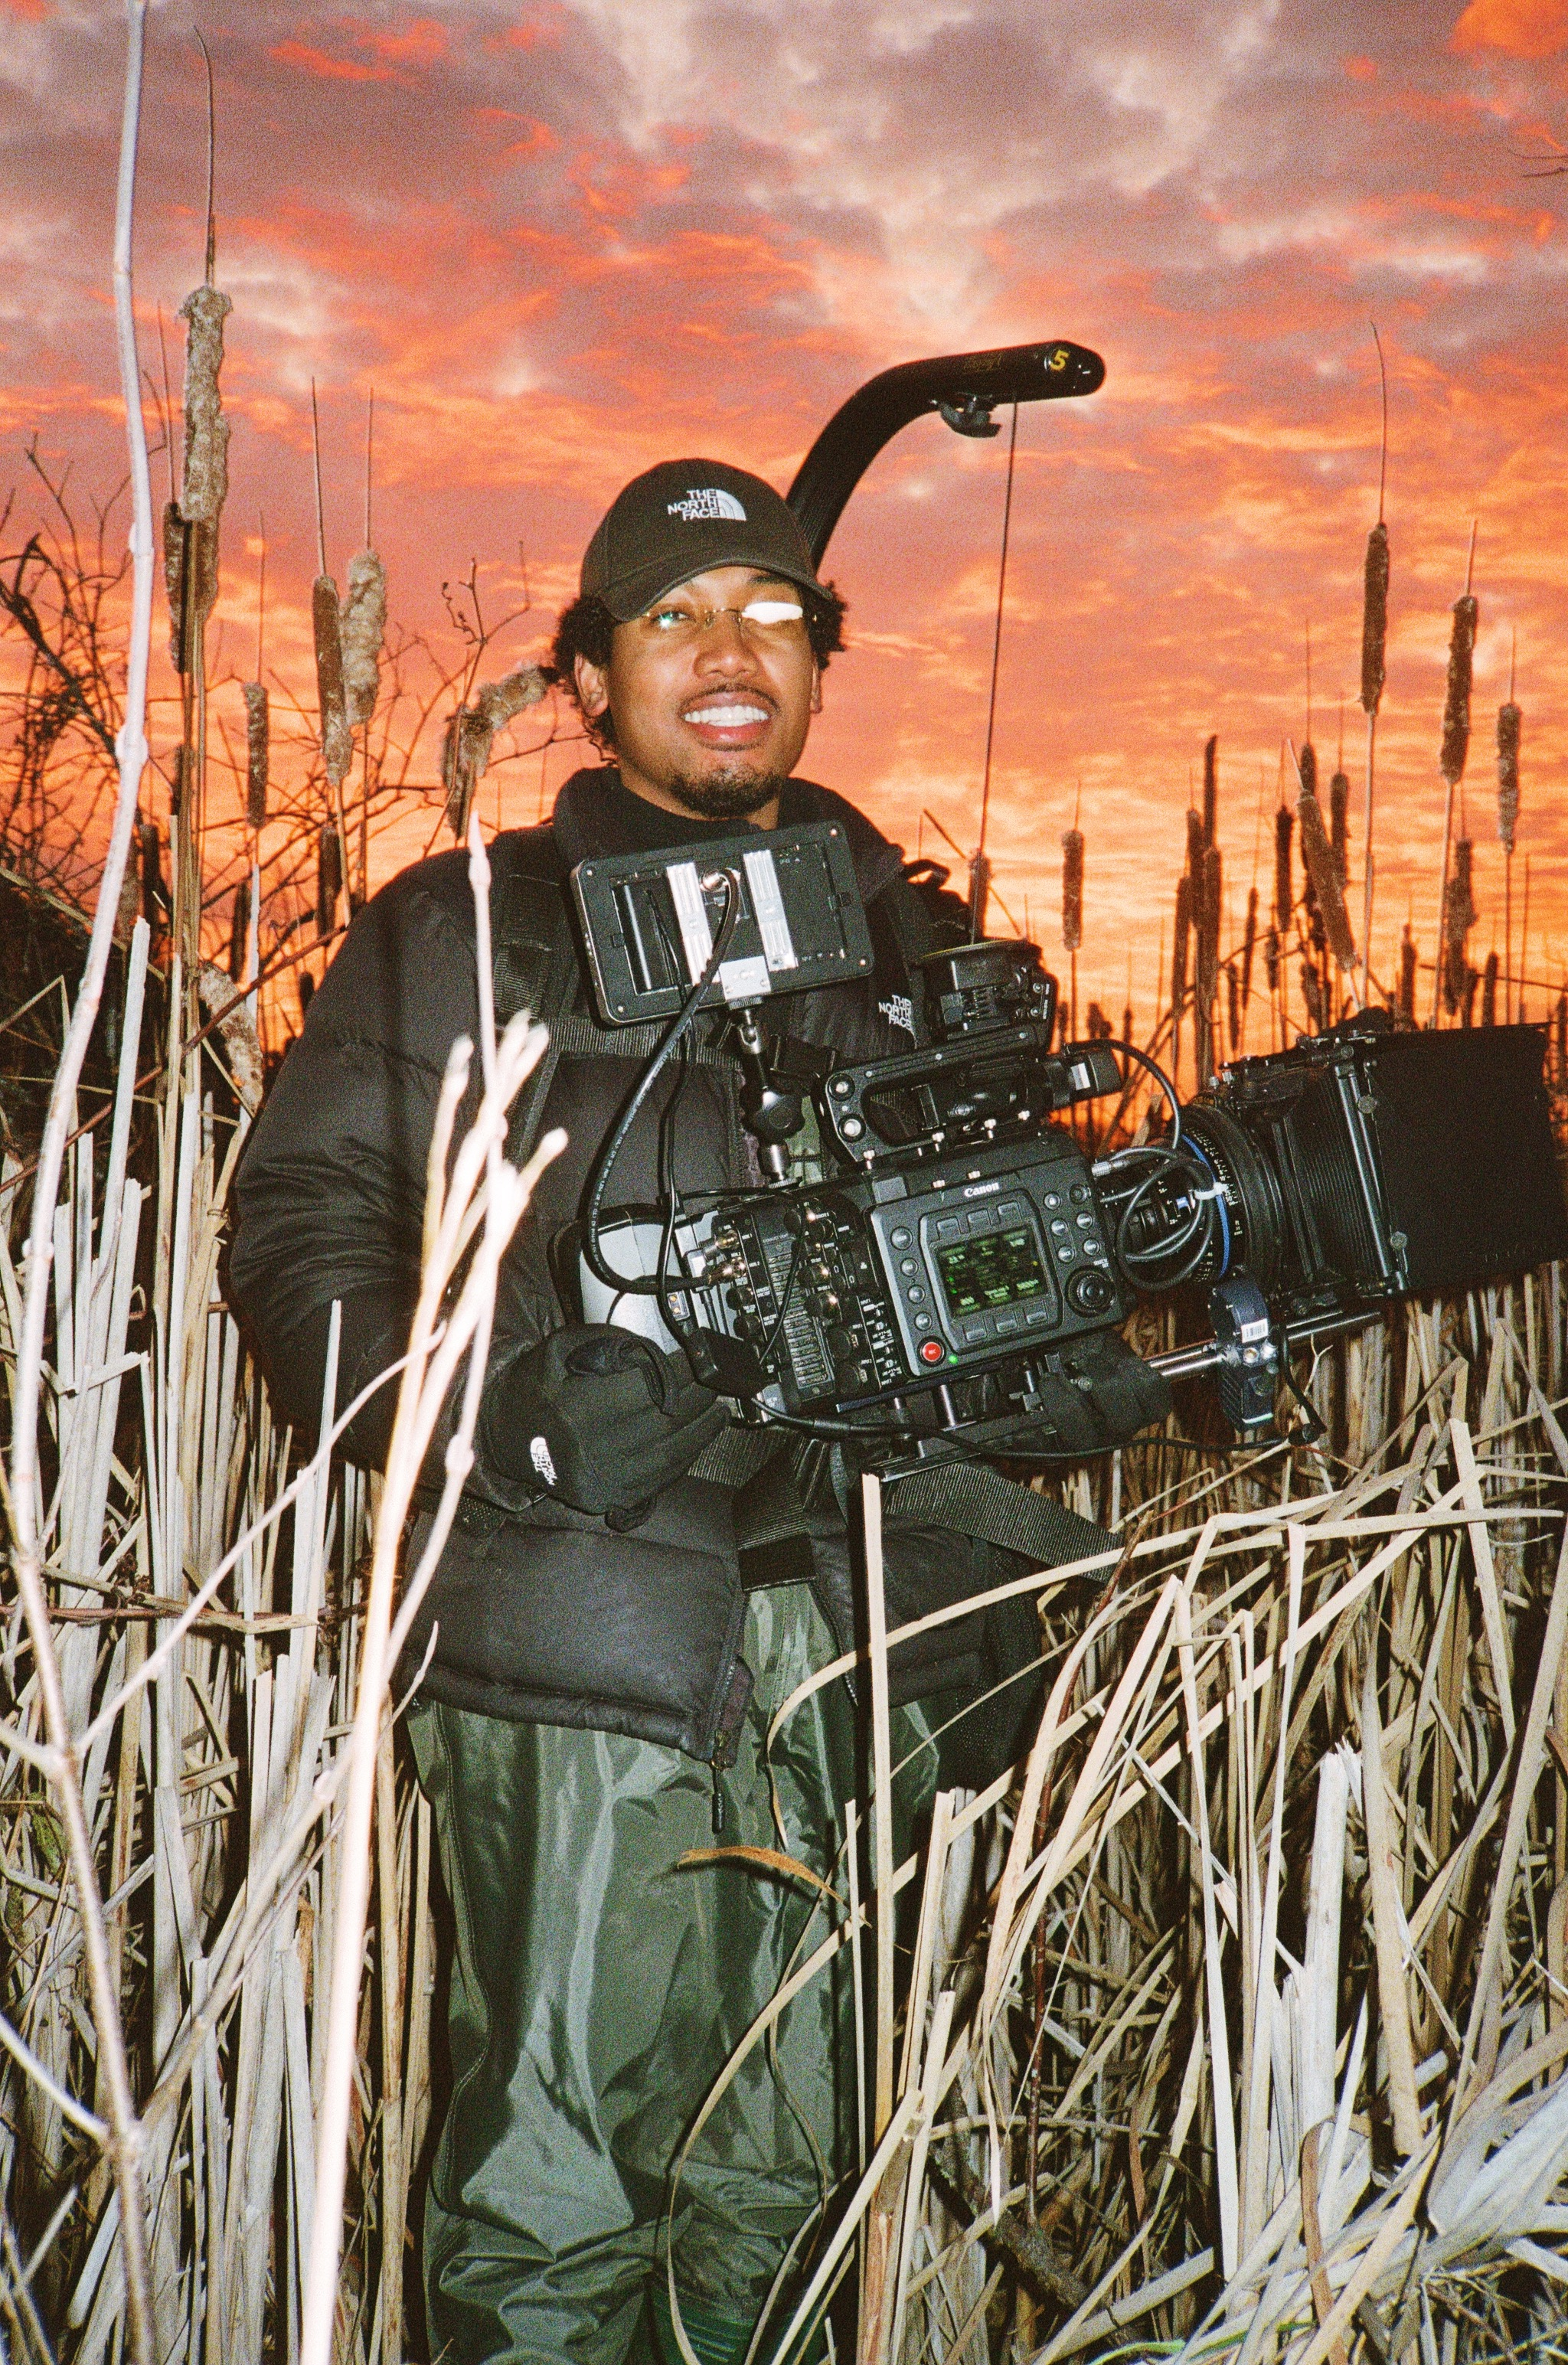 FMTV student Joel Mens, standing in a marsh wearing waders and a Steadicam rig.